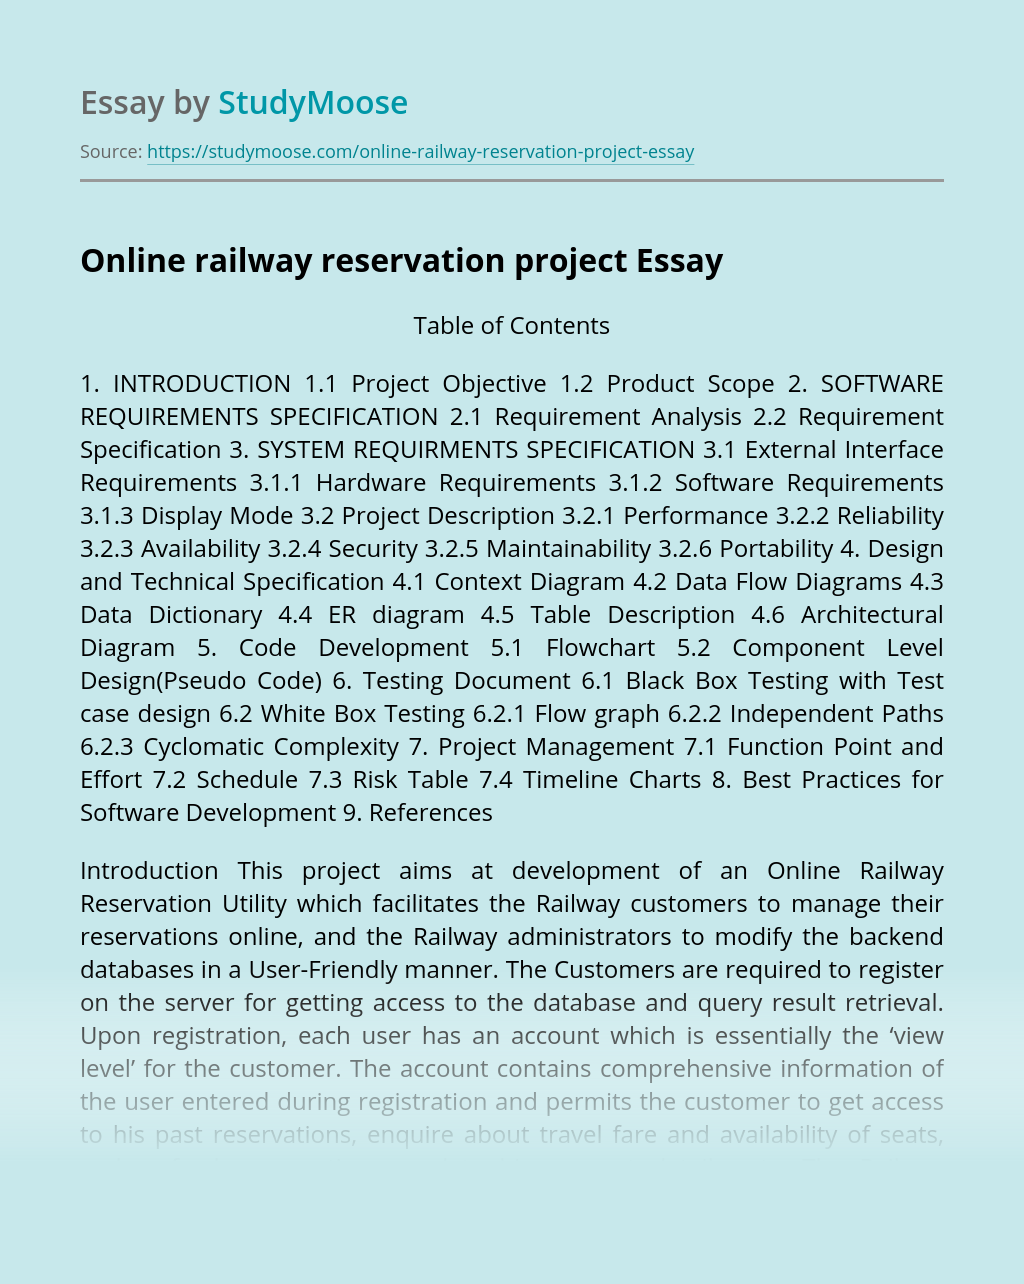 Online railway reservation project